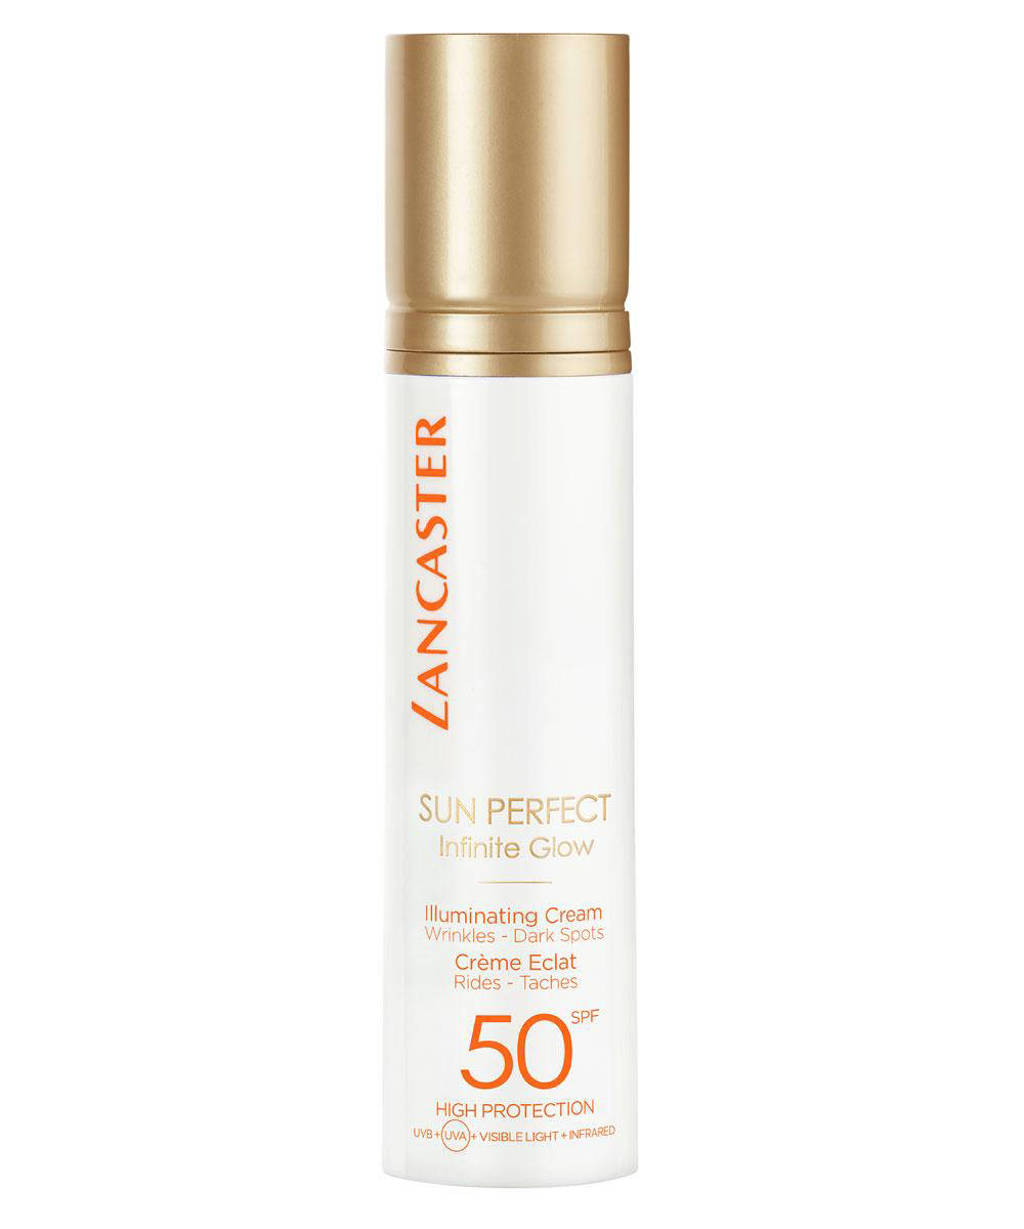 Lancaster Sun Perfect Illuminating Cream SPF50 - 50 ml, Zonnefactor SPF 50